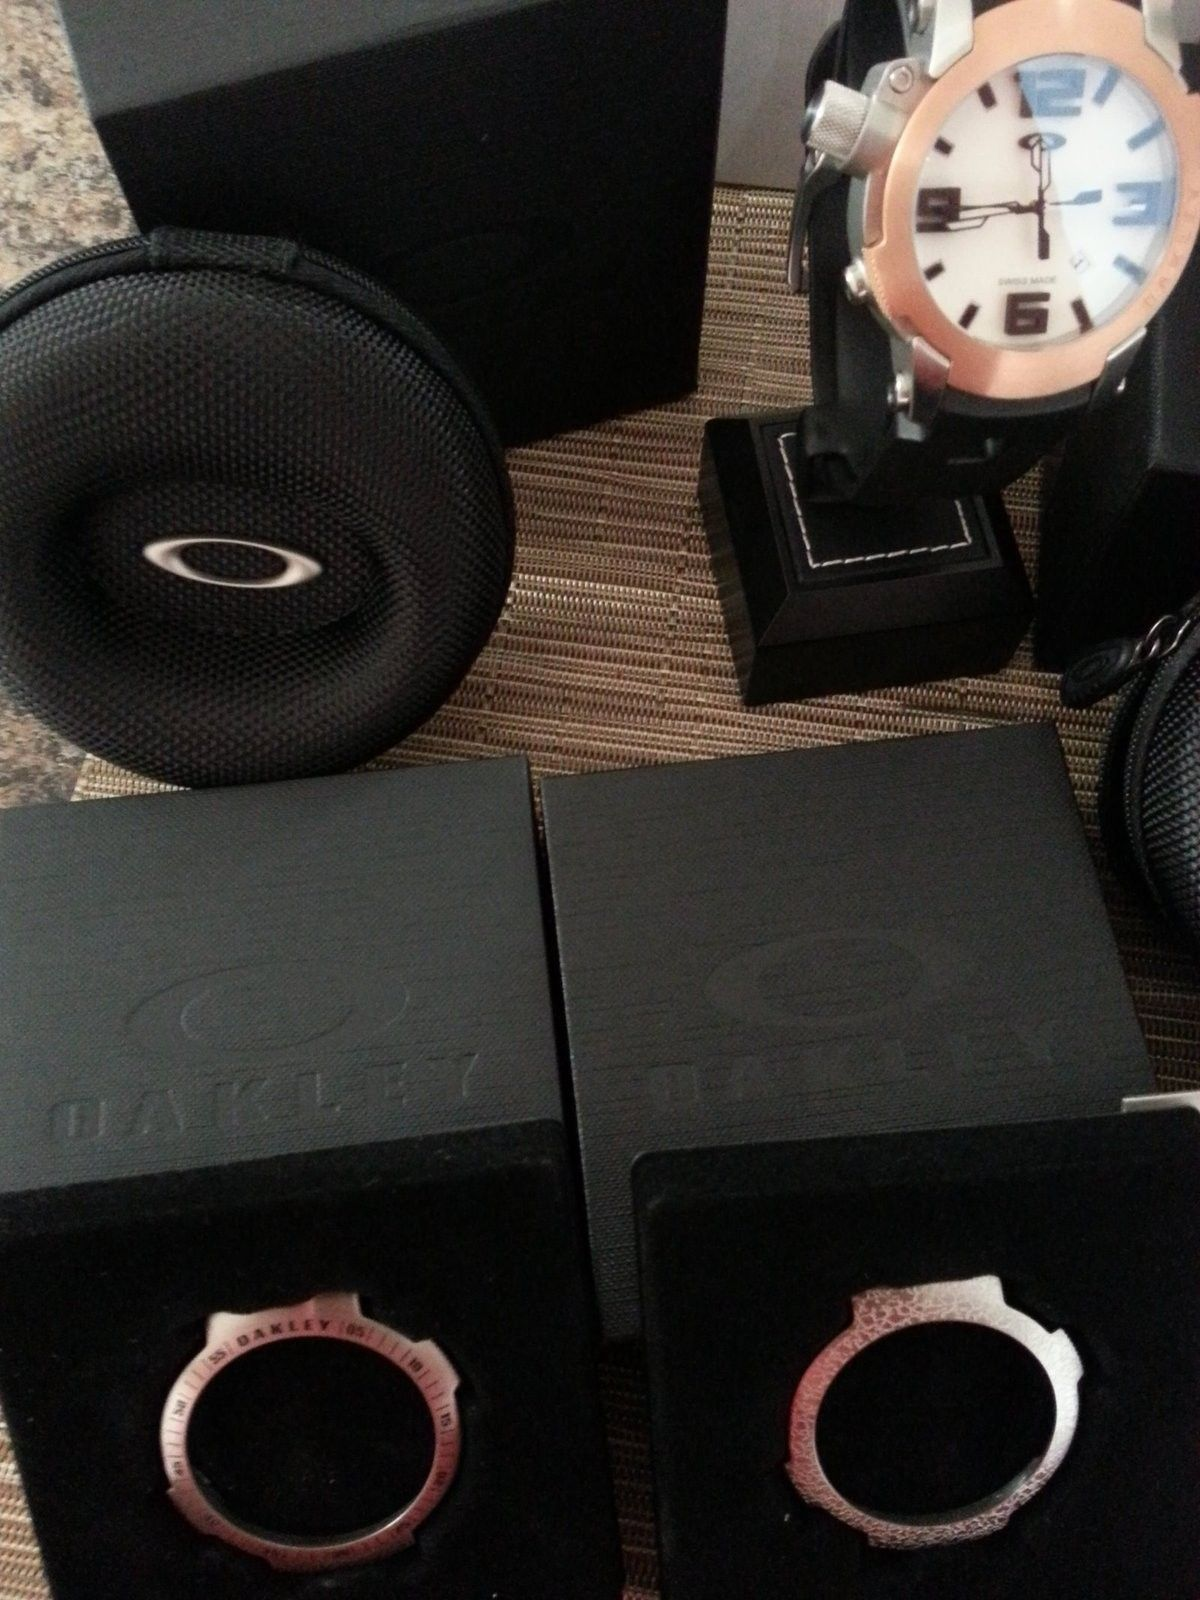 Kill Switch Collection - Watches & Bezels - s2.jpg